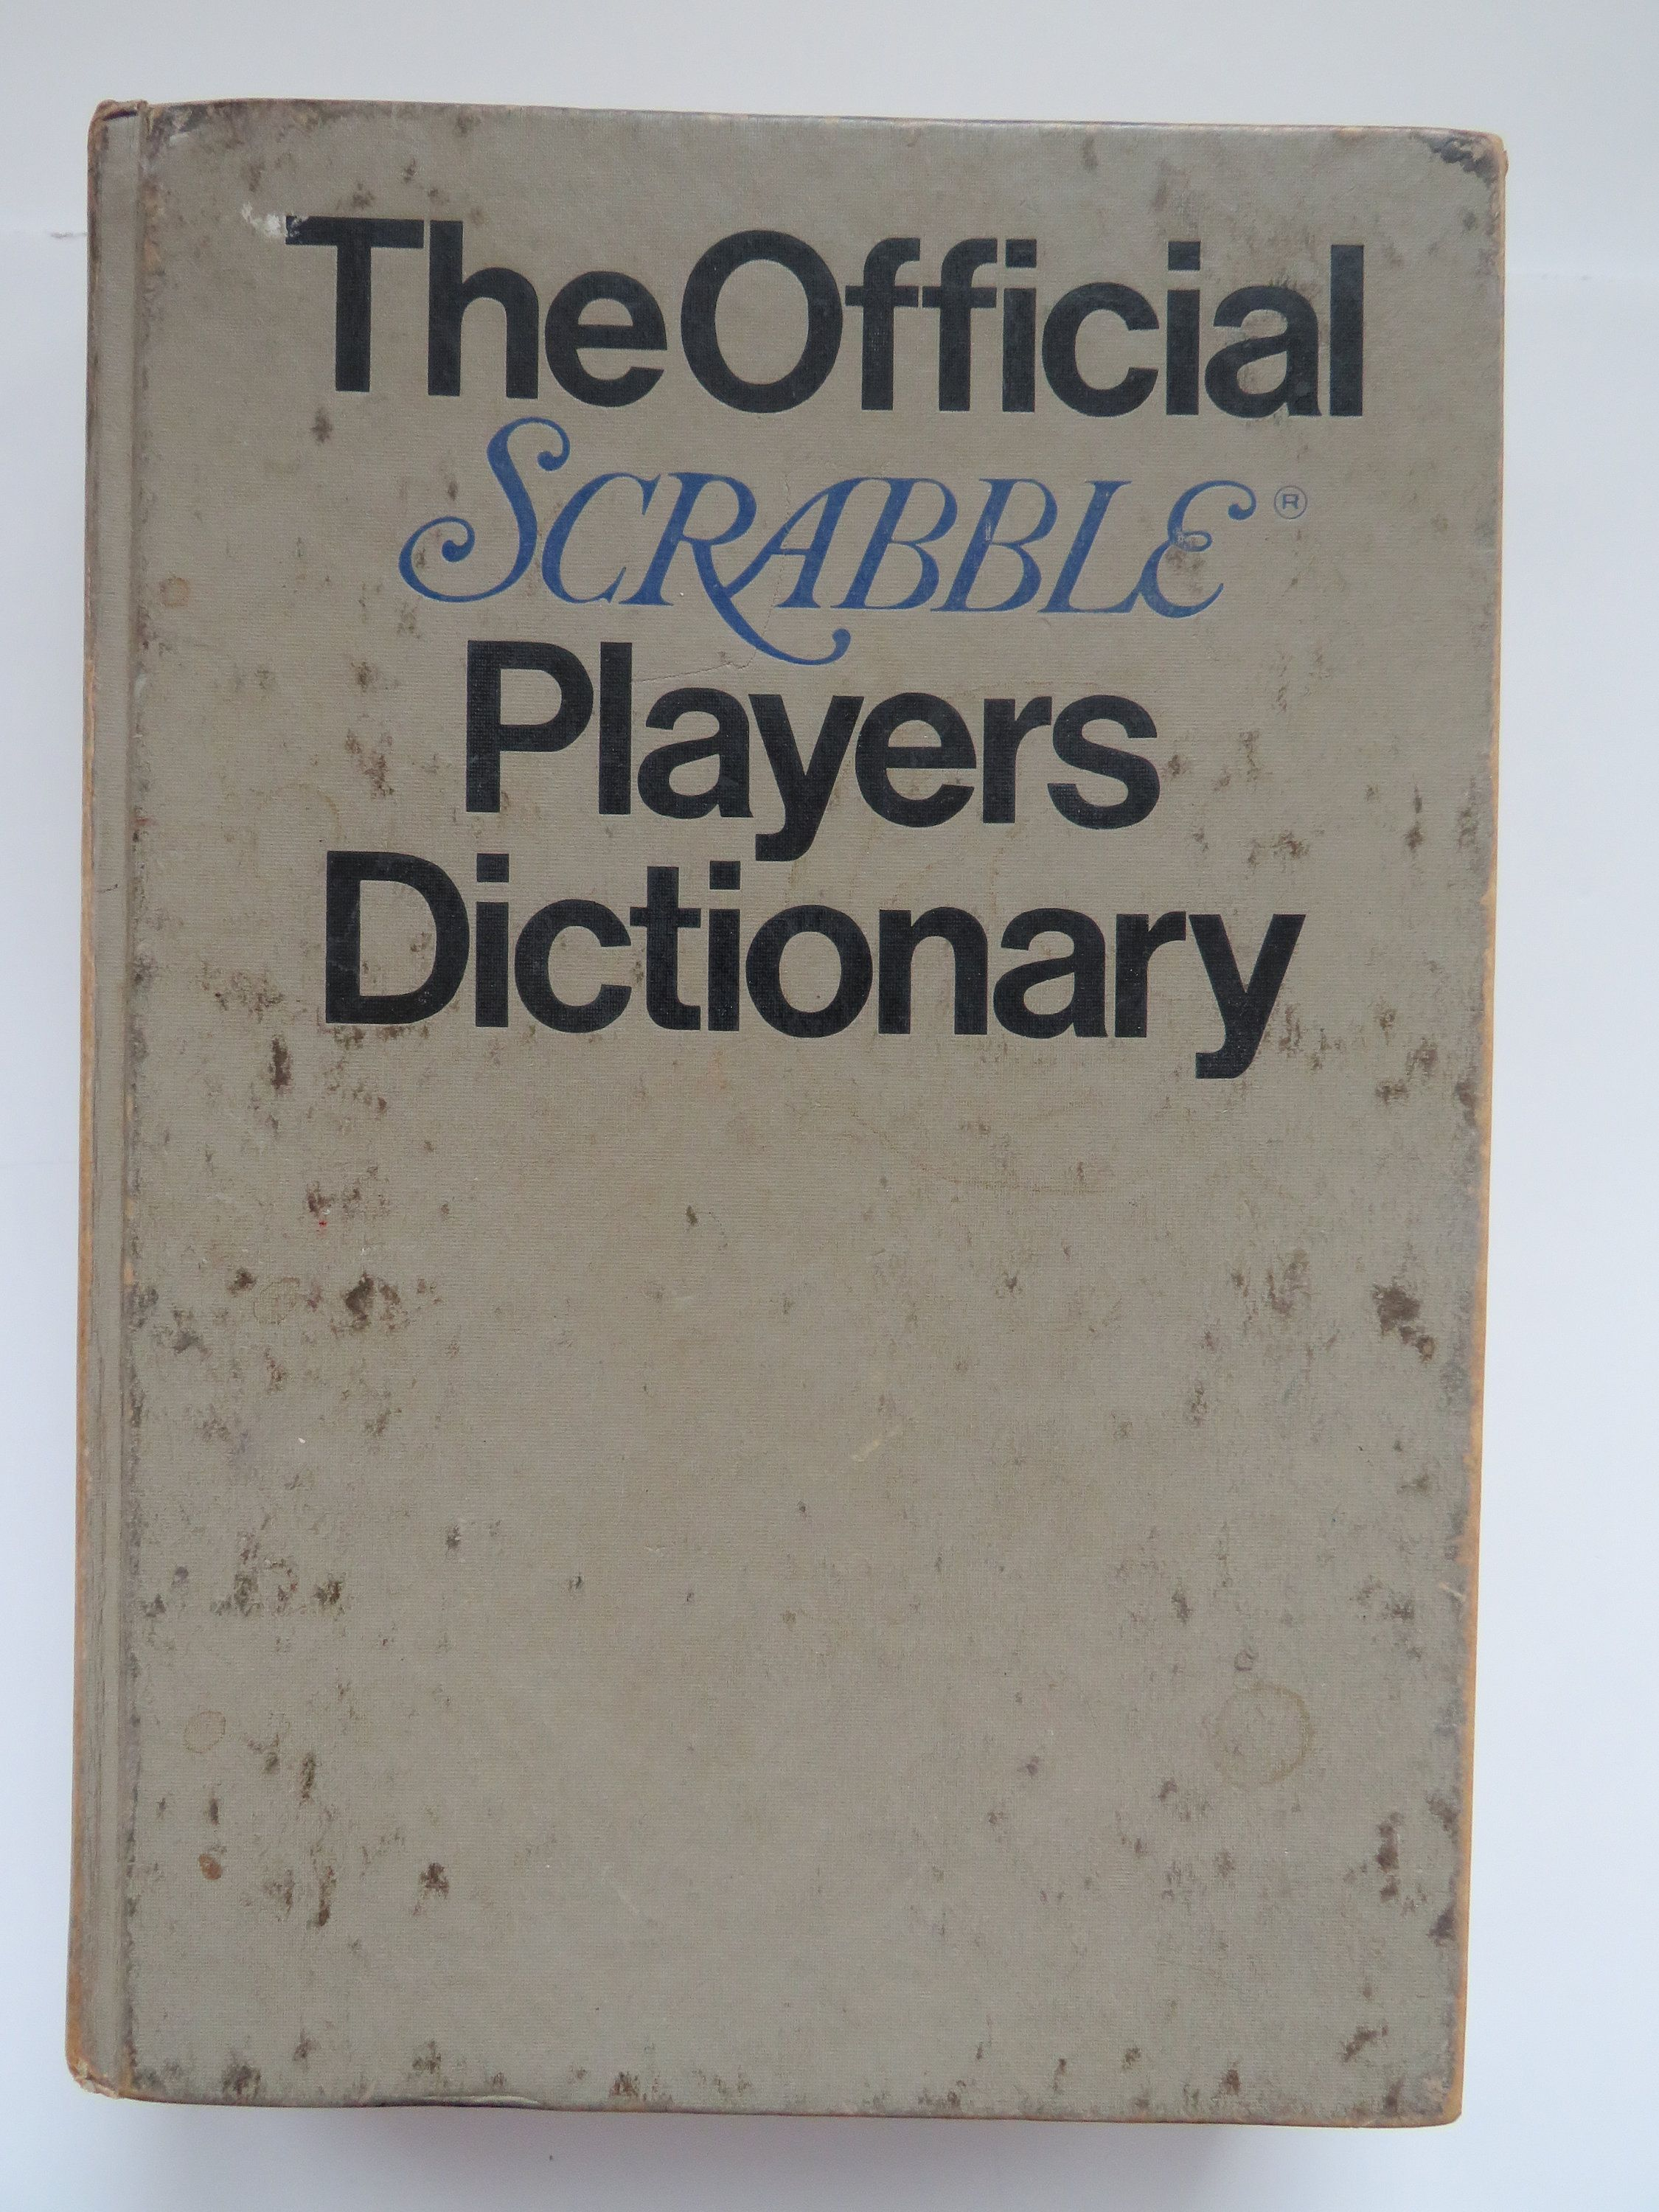 1978 The Official Scrabble Player's Dictionary by G.C